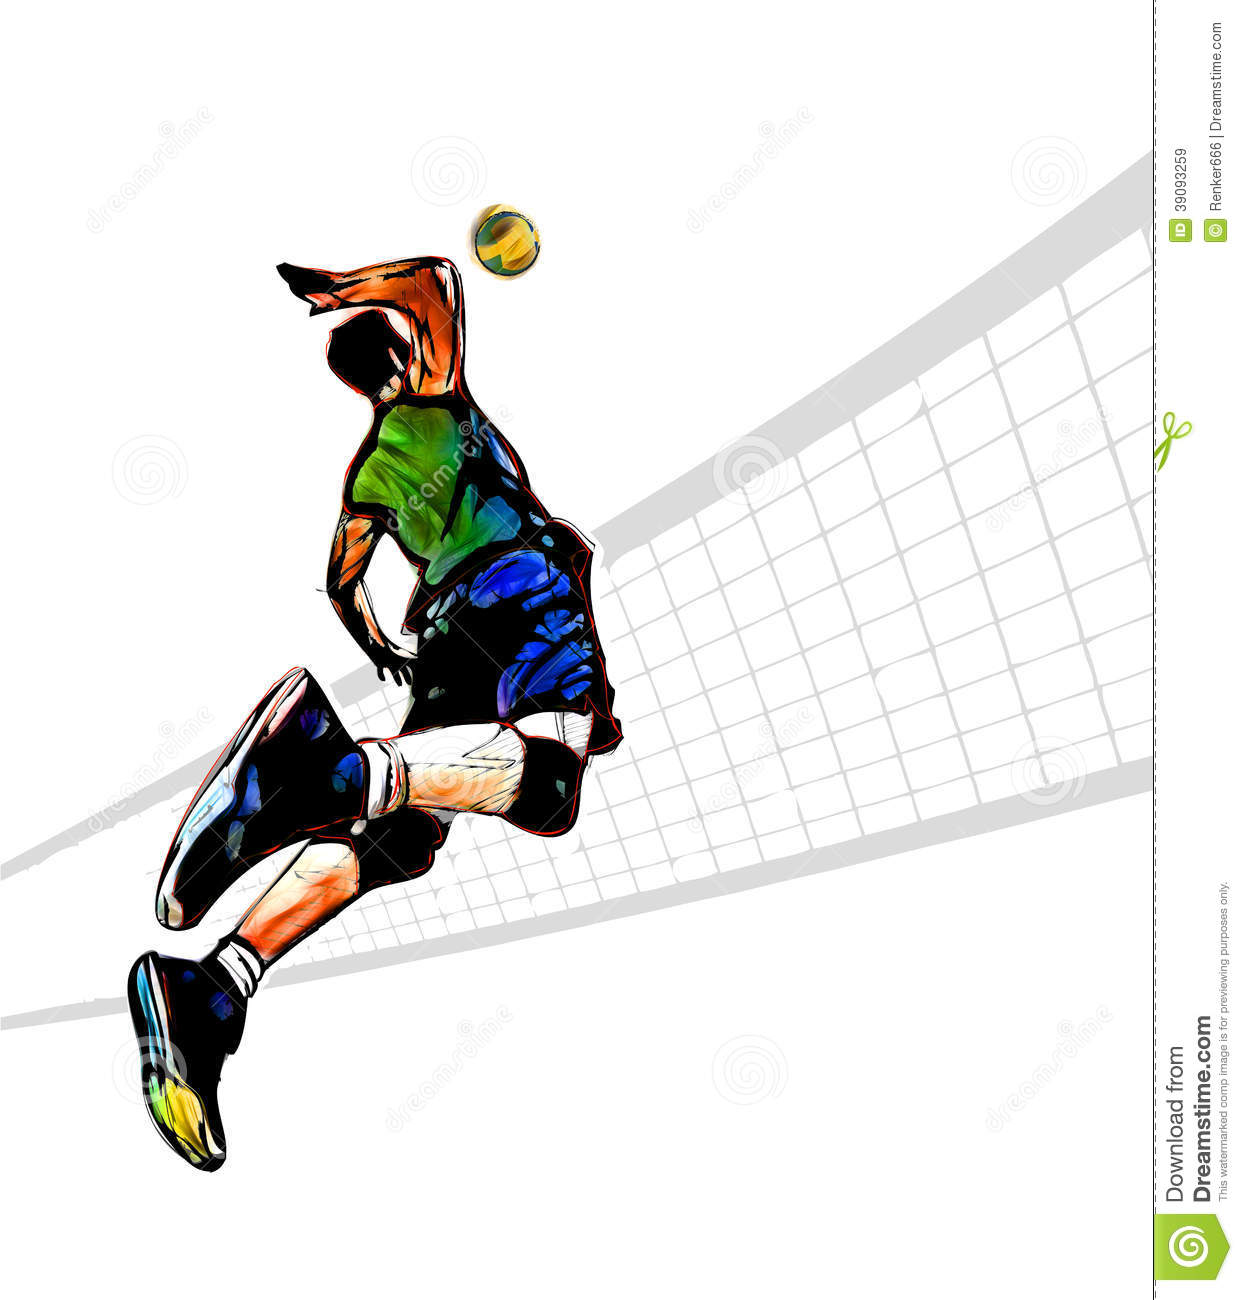 Volleyball Player Stock Illustration - Image: 39093259